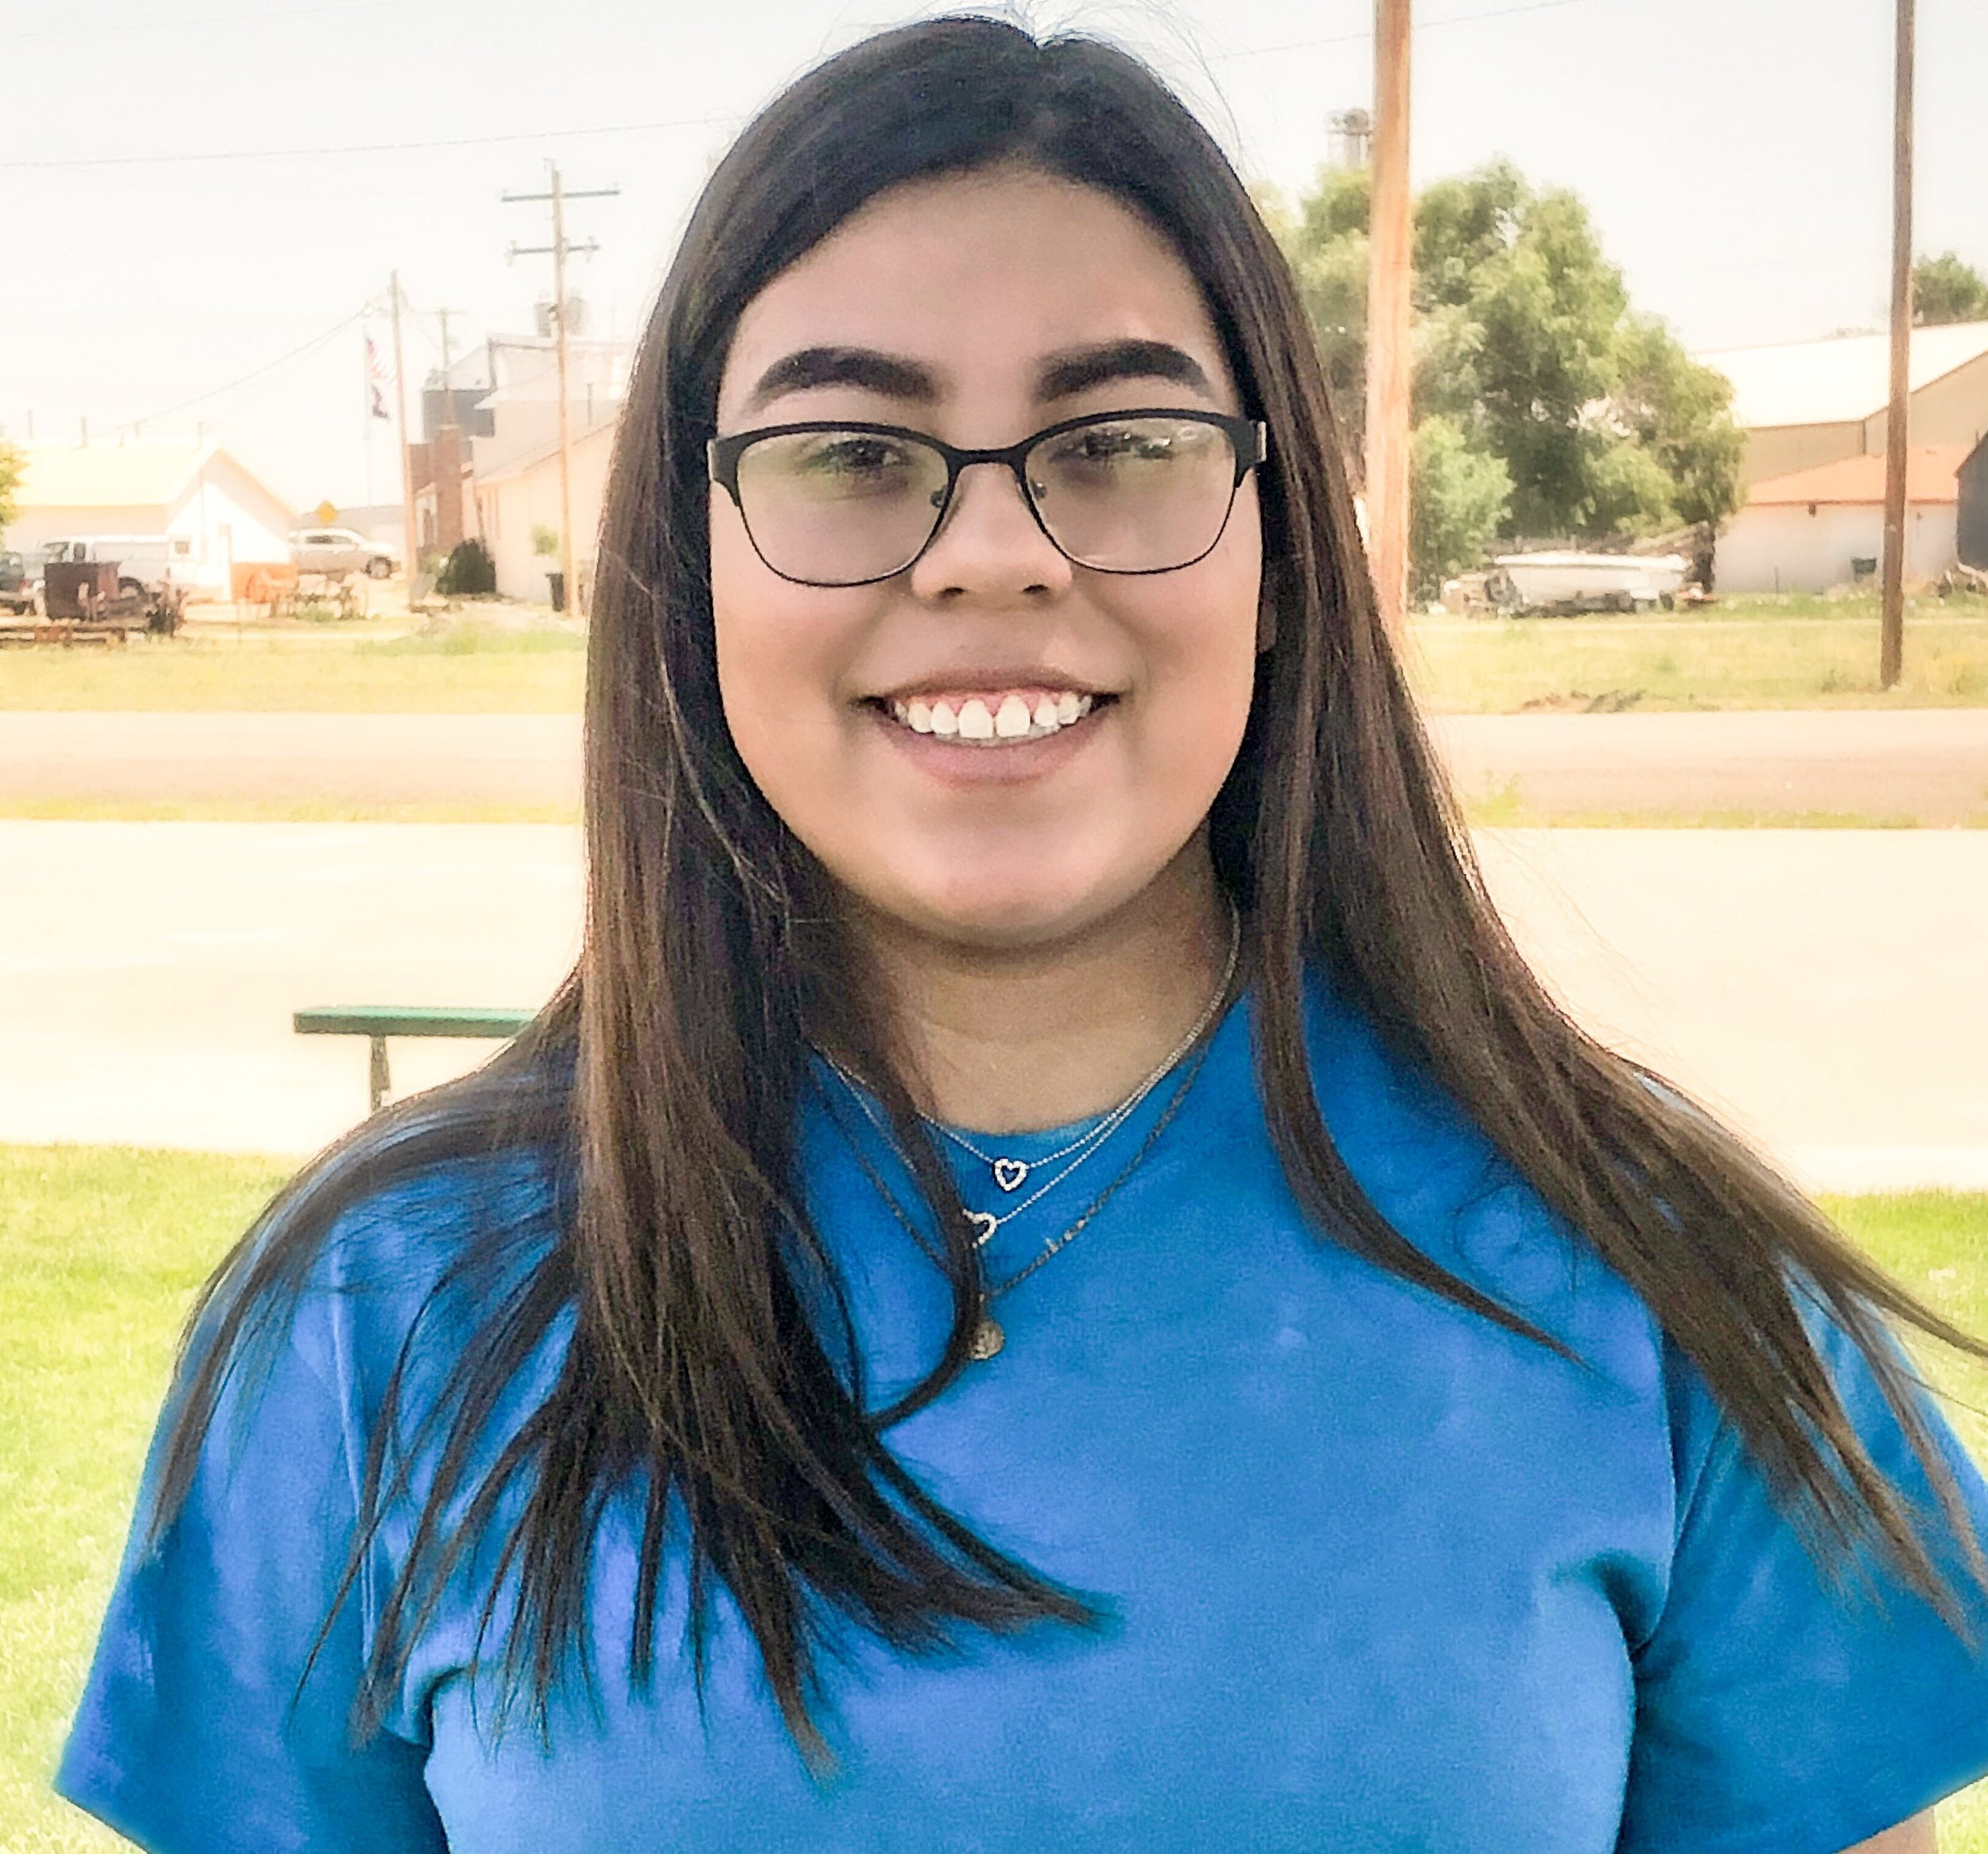 Yadira - Yadira has been with KATB since she was 6 years old! She is excited to be able to now work for KATB!